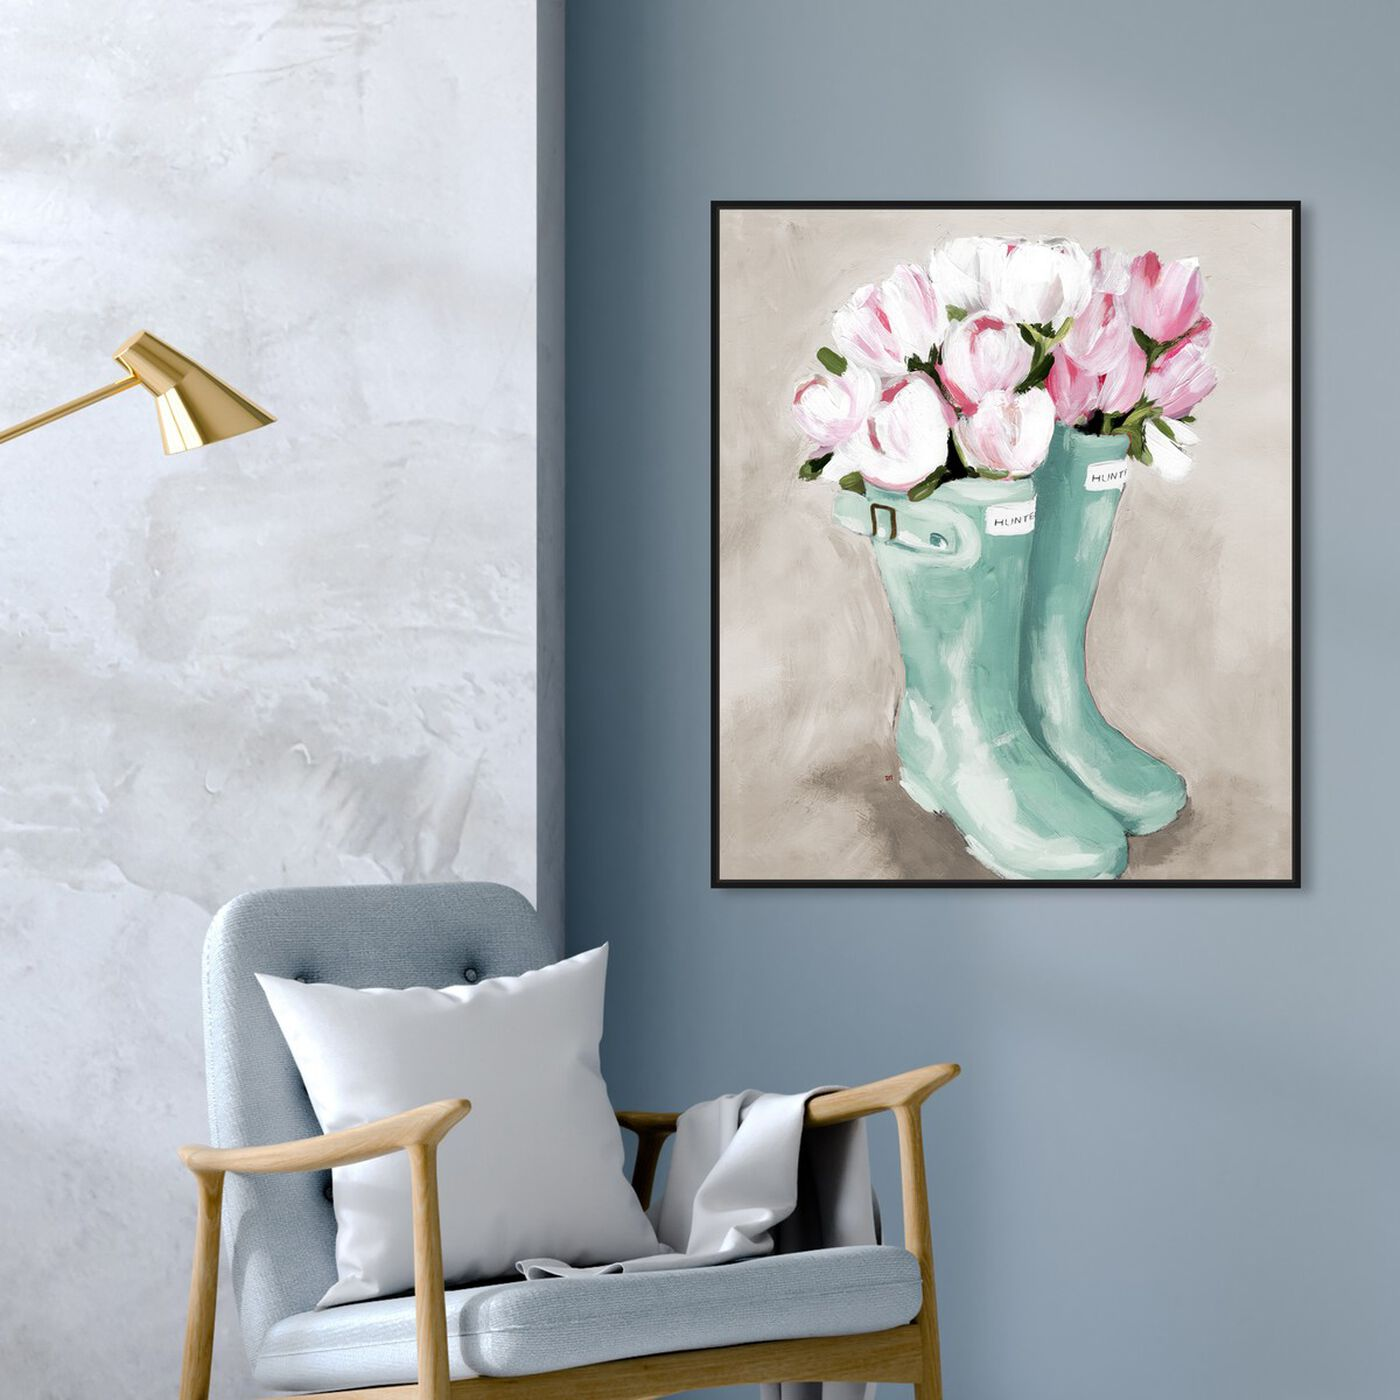 Hanging view of Tulips In Spring Boots featuring floral and botanical and florals art.